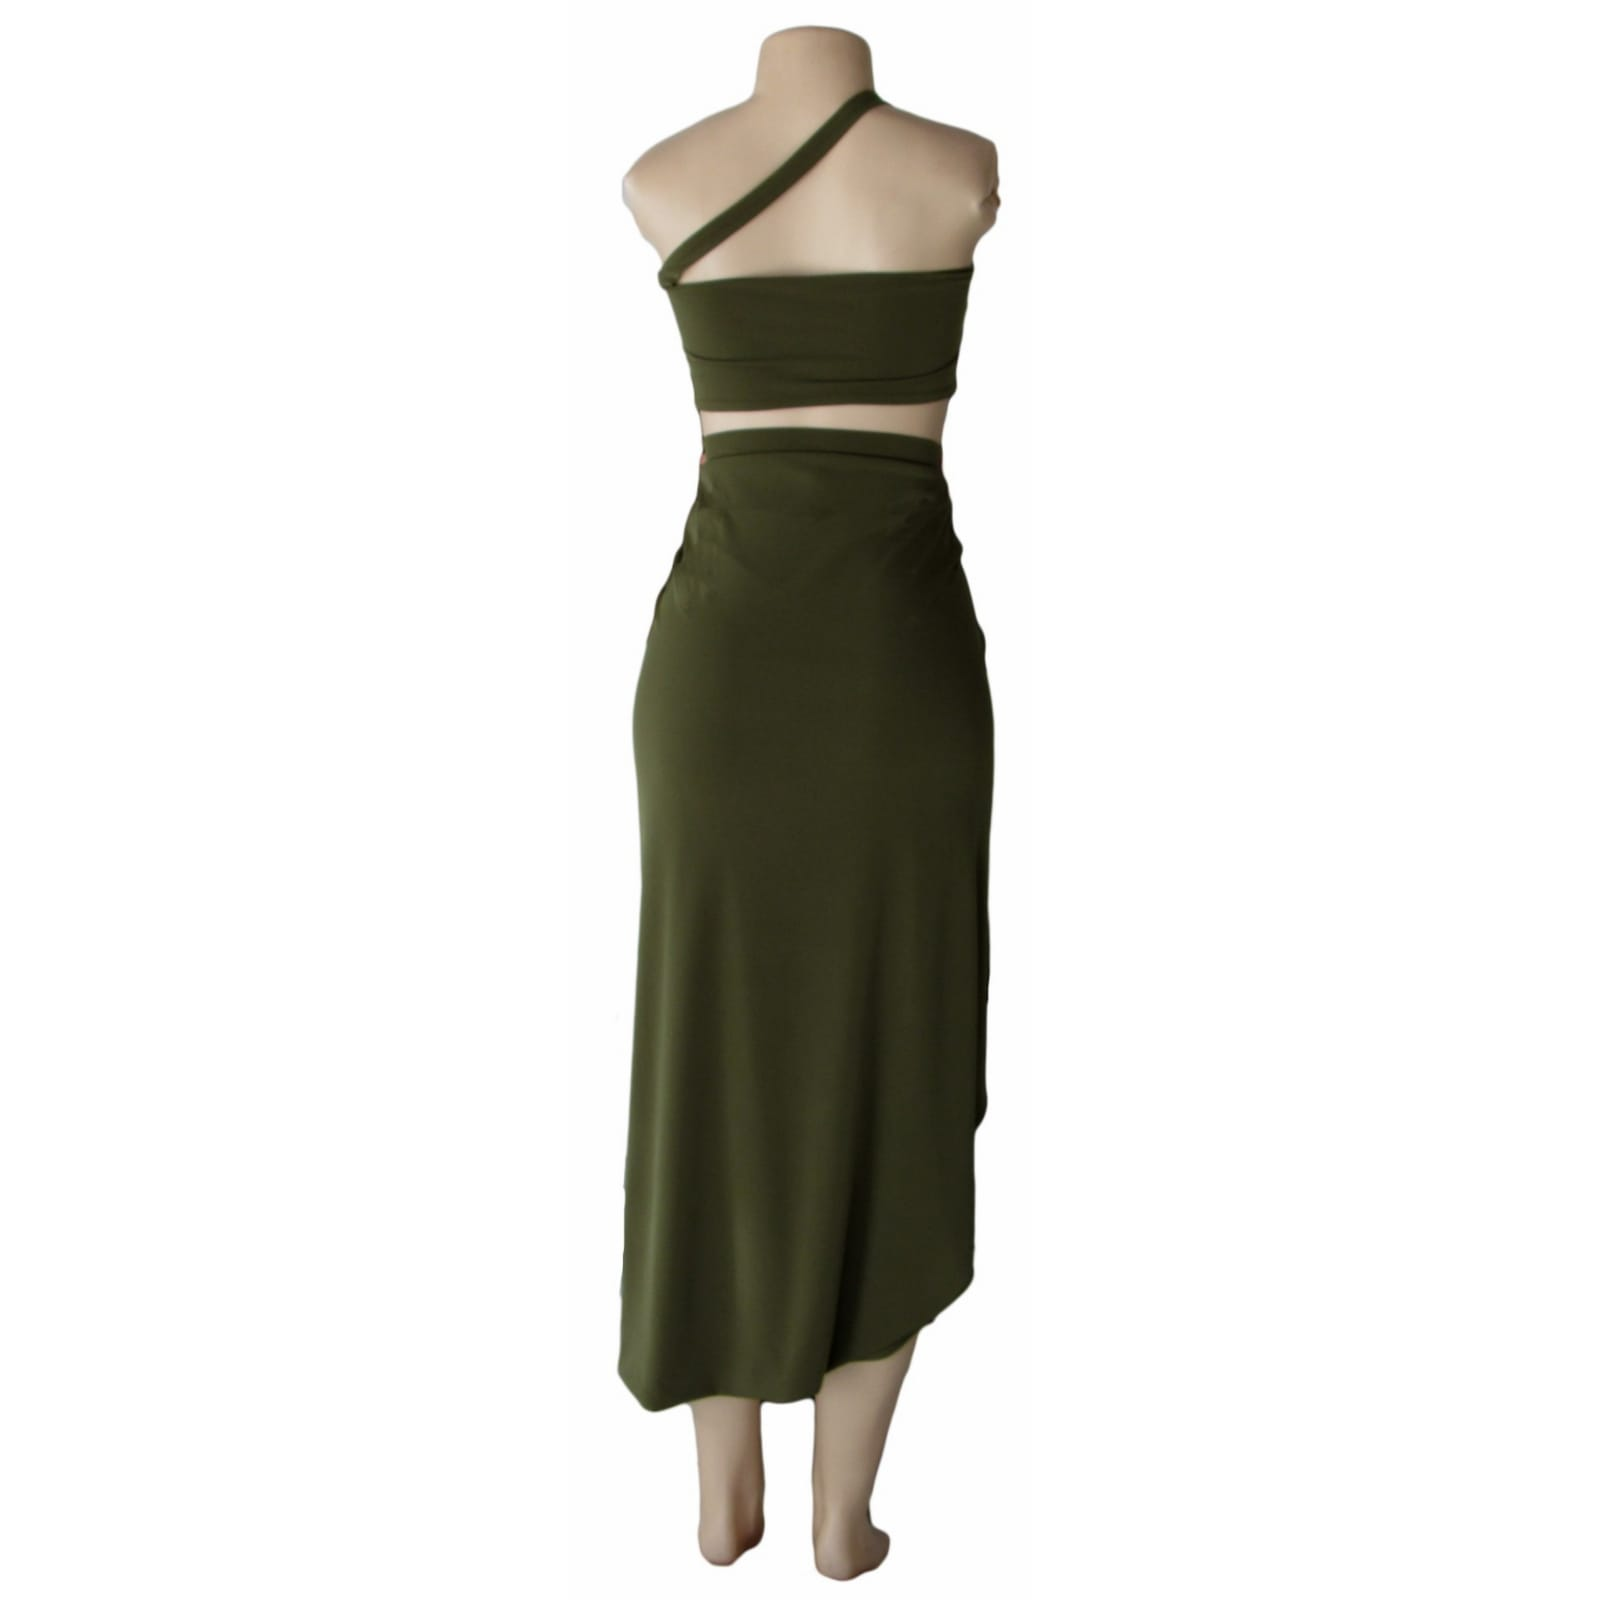 Army green 2 piece smart casual outfit 3 army green 2 piece smart casual outfit with a crop top and a crossed slit fitted skirt